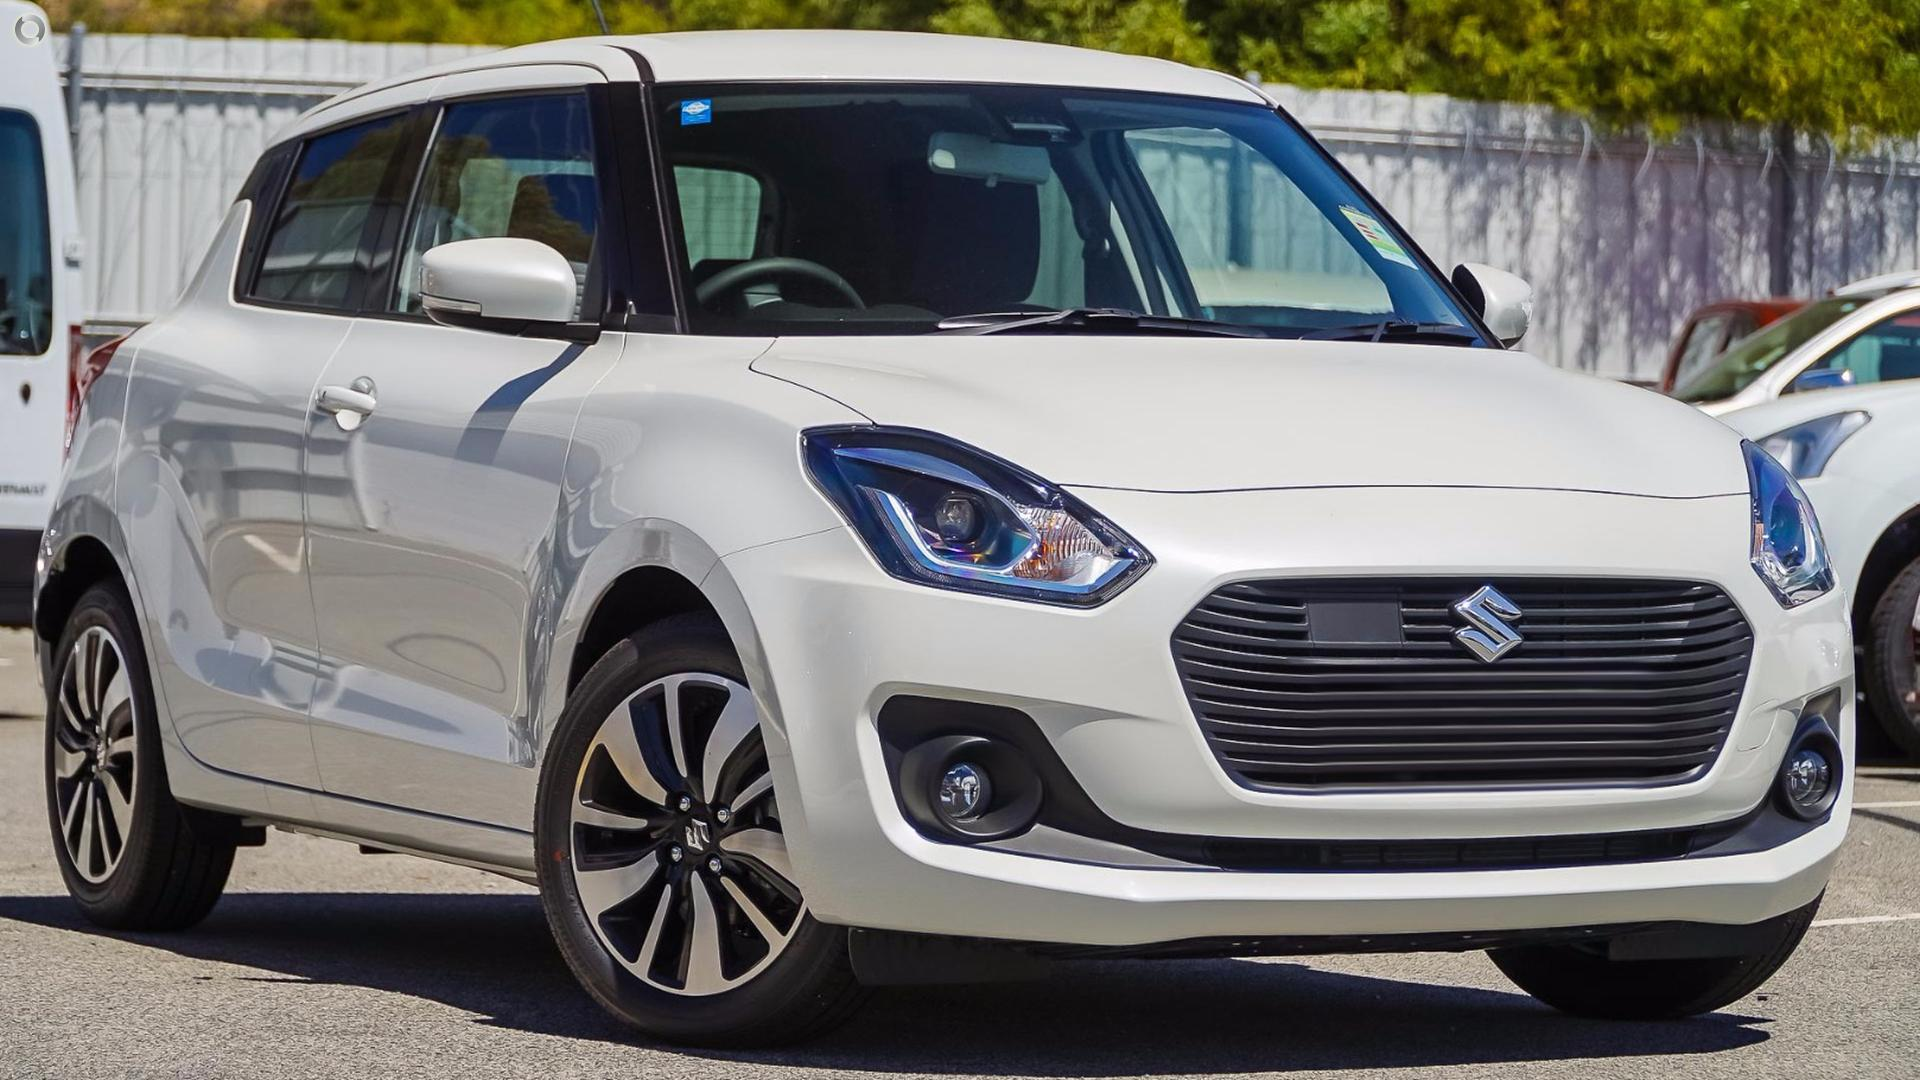 2018 Suzuki Swift GLX Turbo AZ